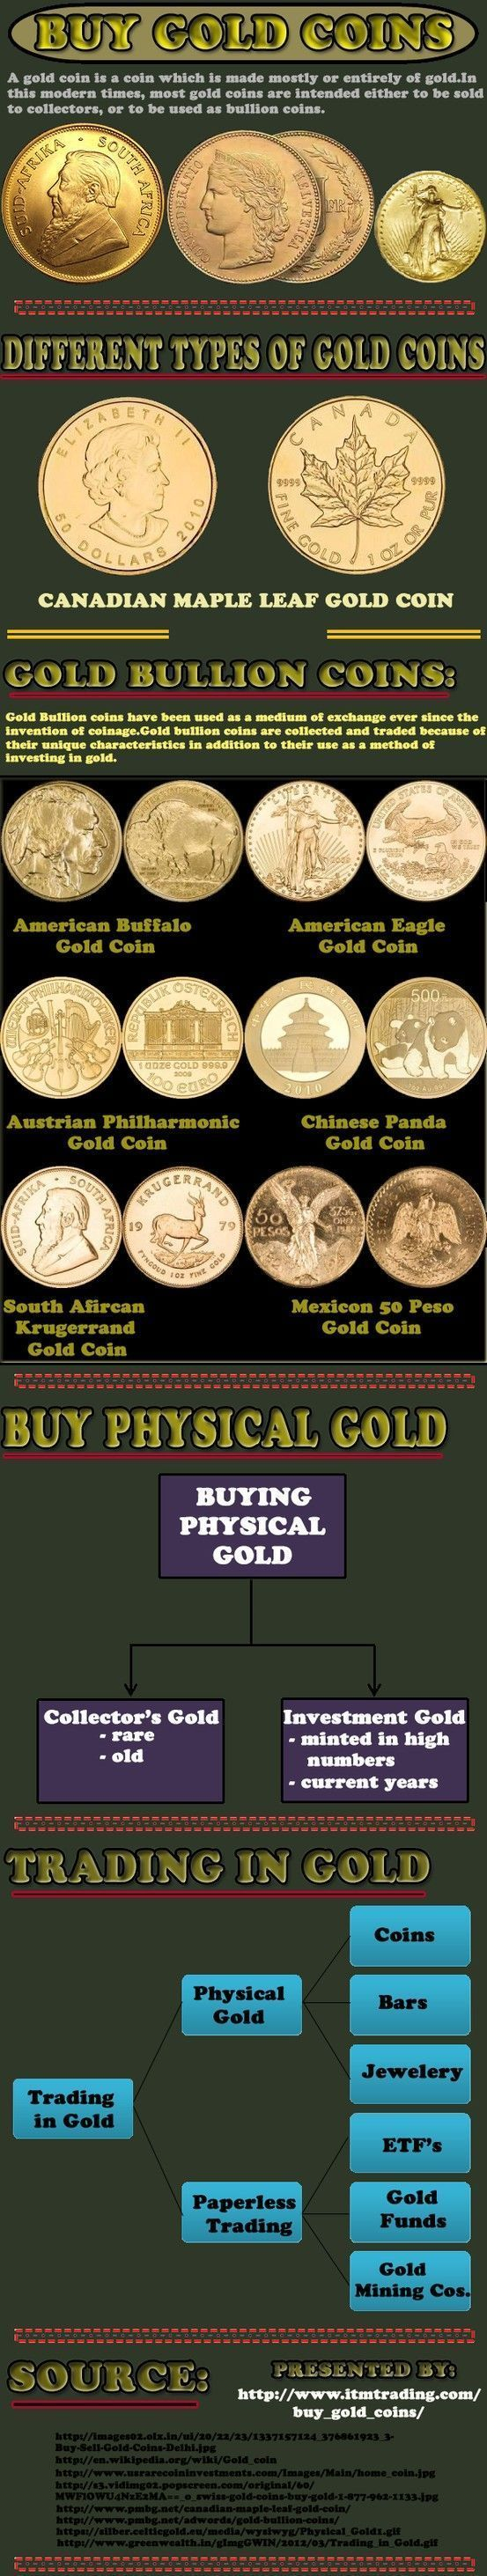 The presentation here enumerates about buying gold coins from ITM Trading Co. ITM Trading provides buying and selling opportunities for people looking to invest in the gold coin market. It provides gold coin buying opportunities in vrios gold coins such as American Eagle Gold Bullion Coin, American Buffalo Gold Bullion Coin, Canadian Gold Maple Leaf and many more. http://www.itmtrading.com/buy_gold_coins/ #GoldBullion